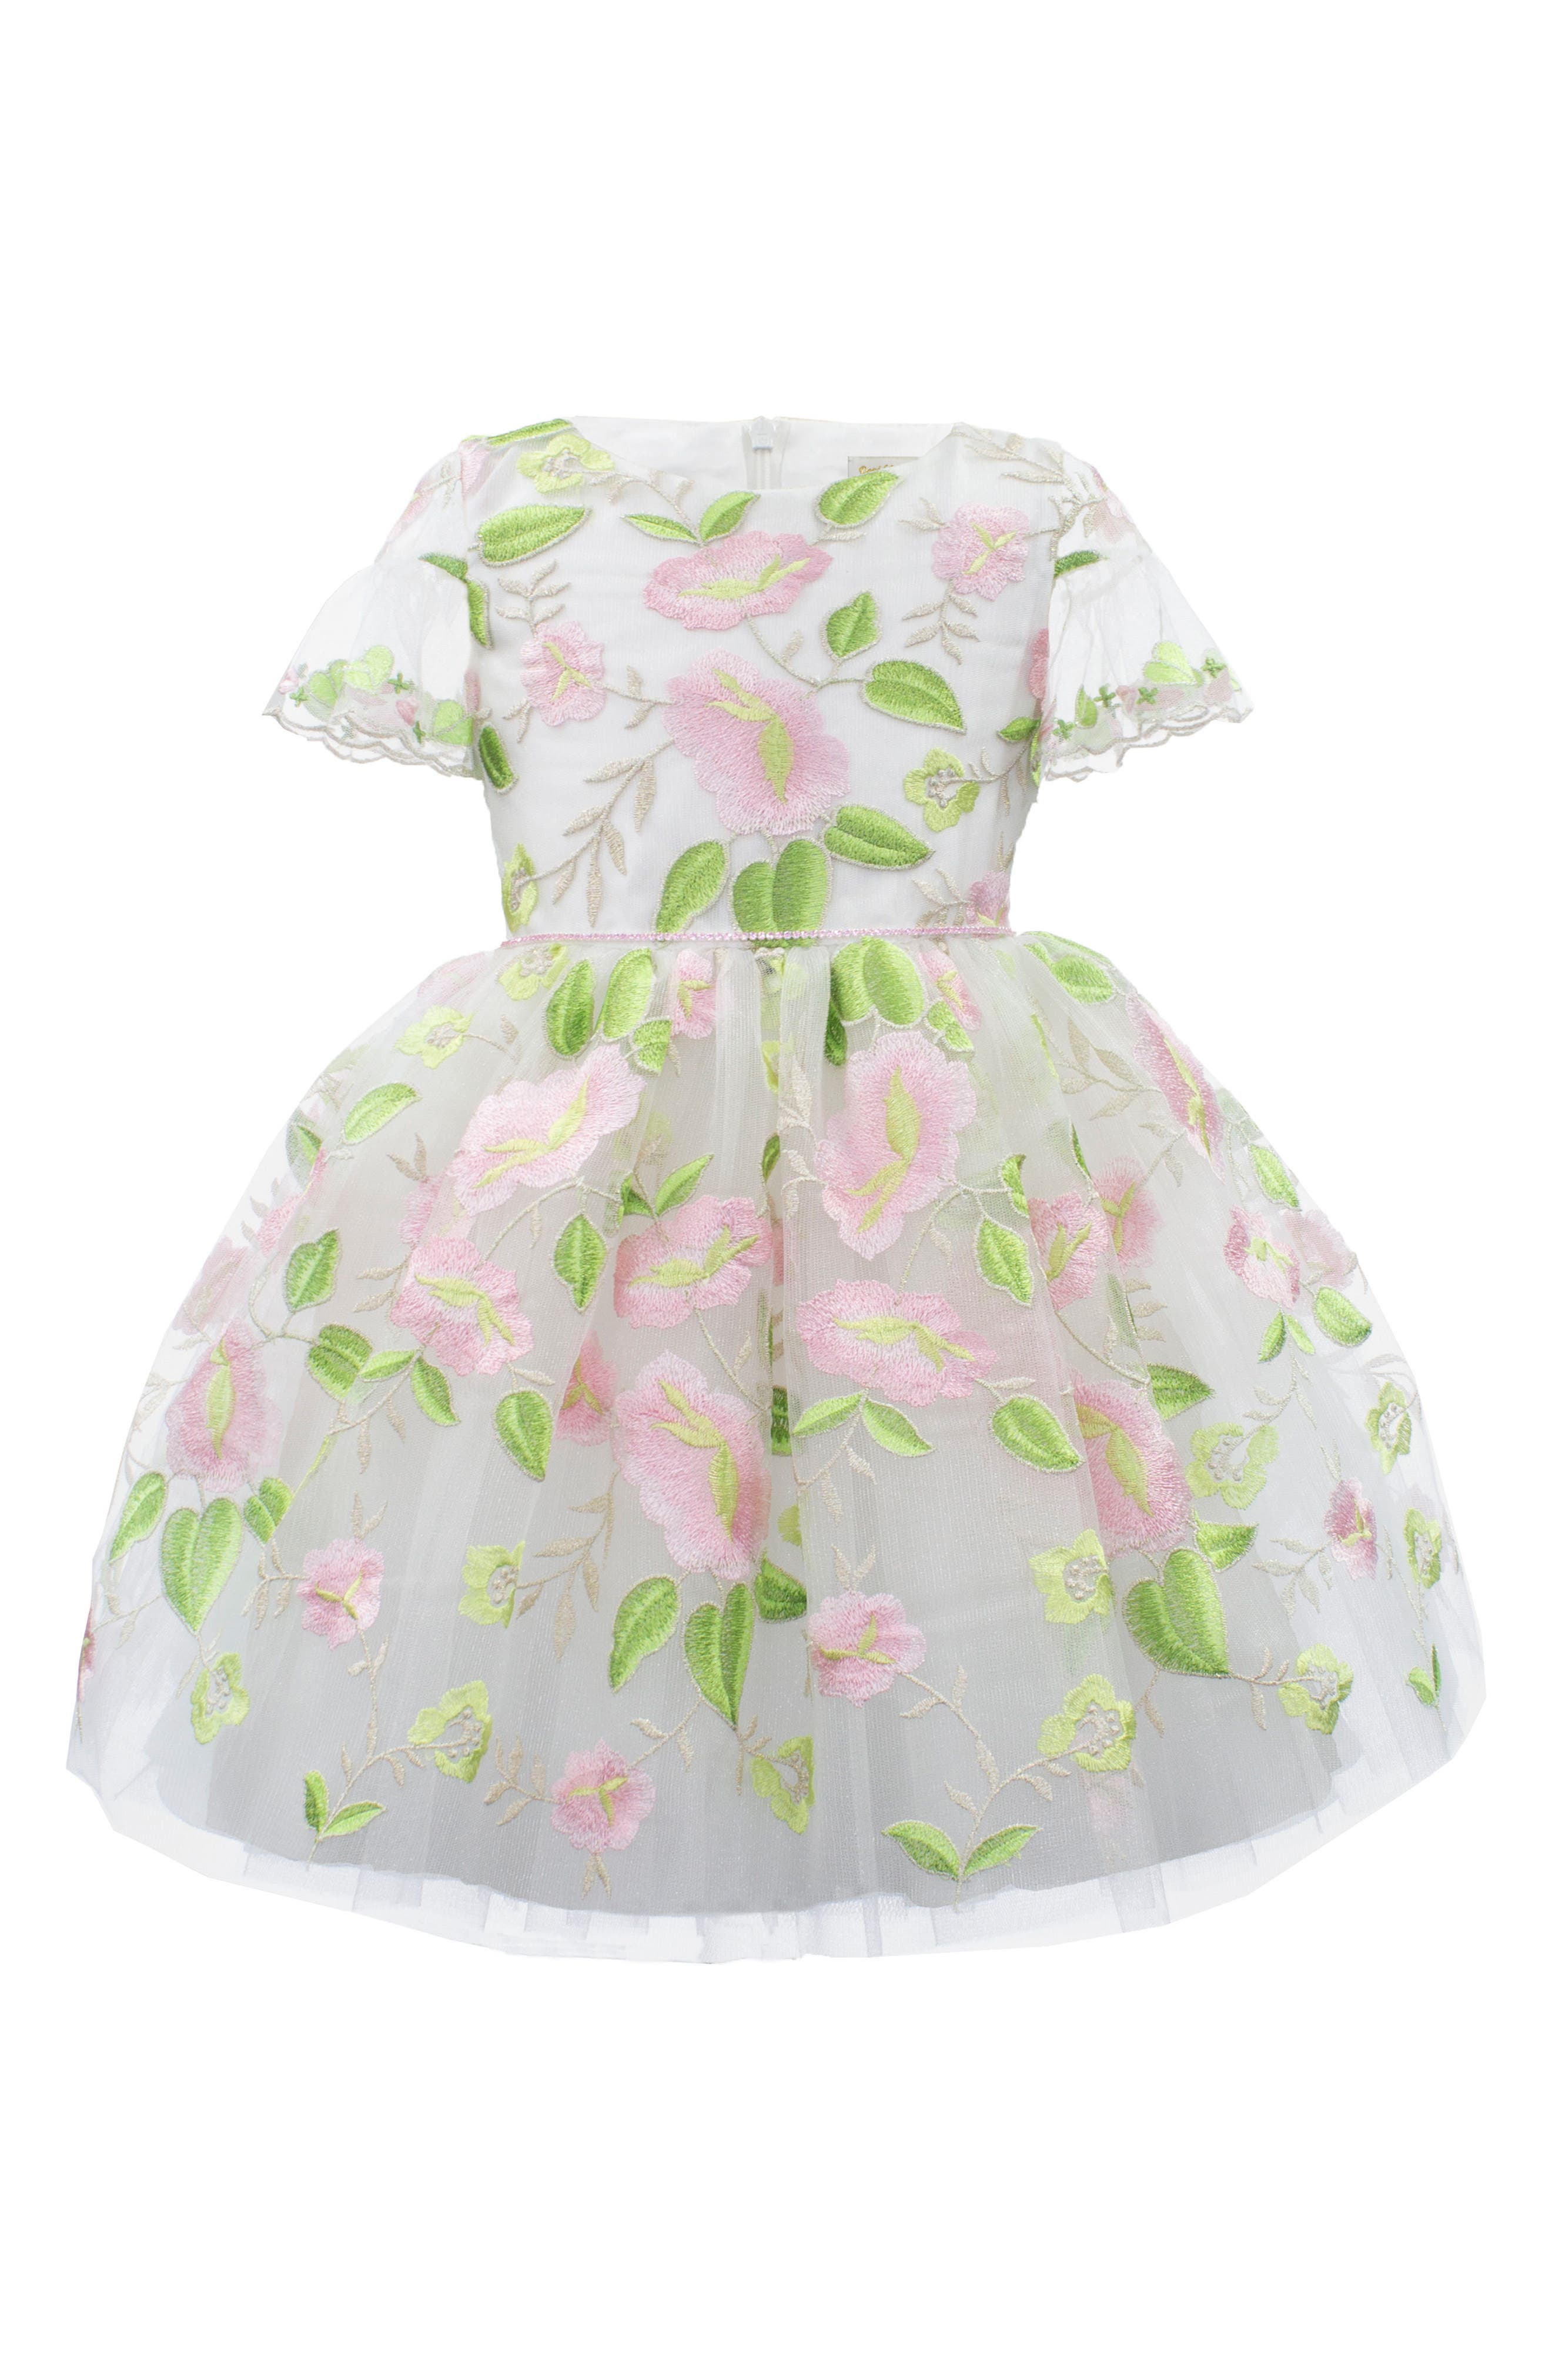 David Charles Embroidered Tulle Party Dress (Toddler Girls, Little Girls & Big Girls)